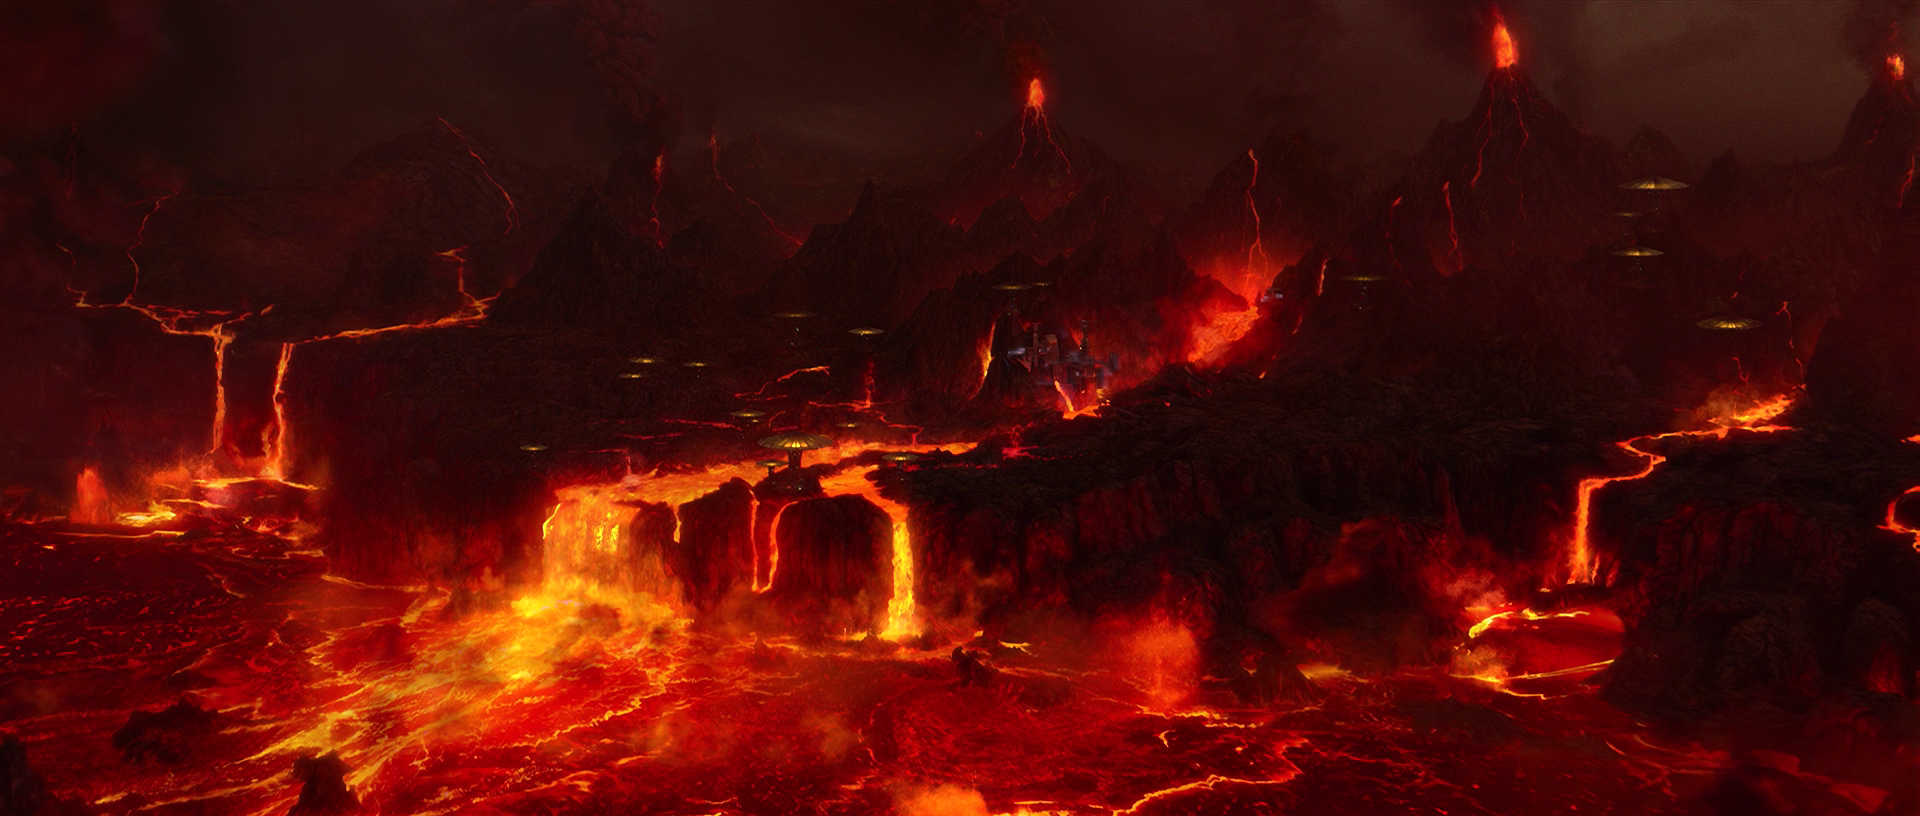 Mustafar | Wookieepedia | Fandom powered by Wikia